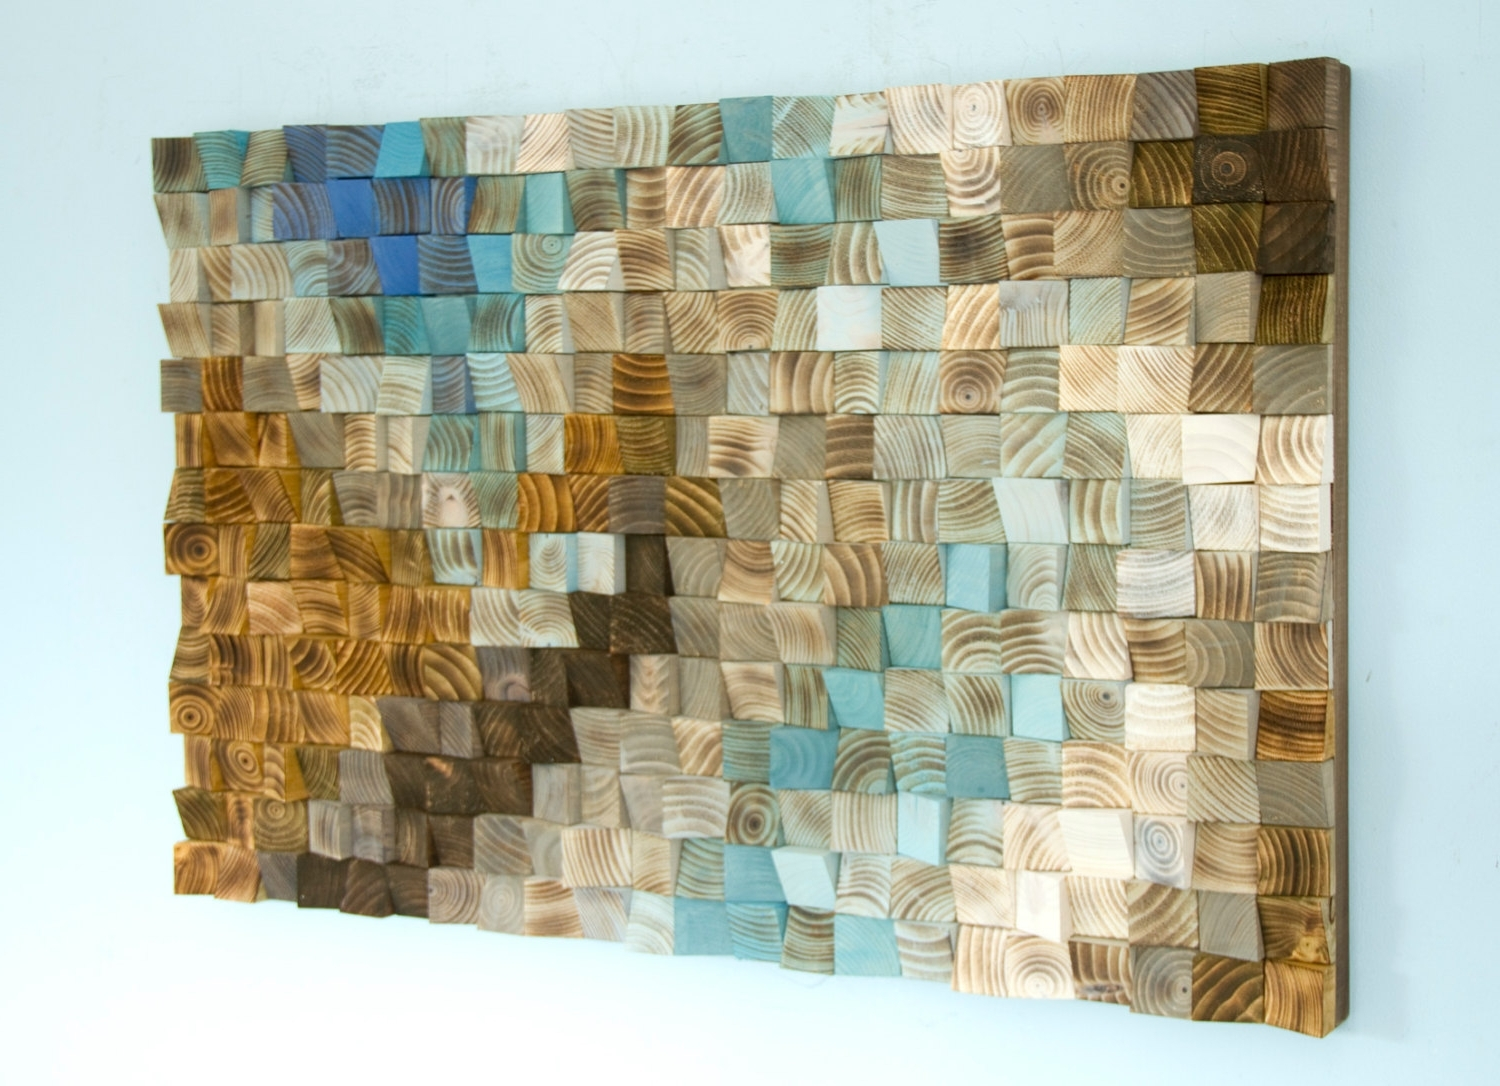 Widely Used Mosaic Wall Art Elegant Wood Office Decor Geometric 24 X 36 Within Within Mosaic Wall Art (View 15 of 15)